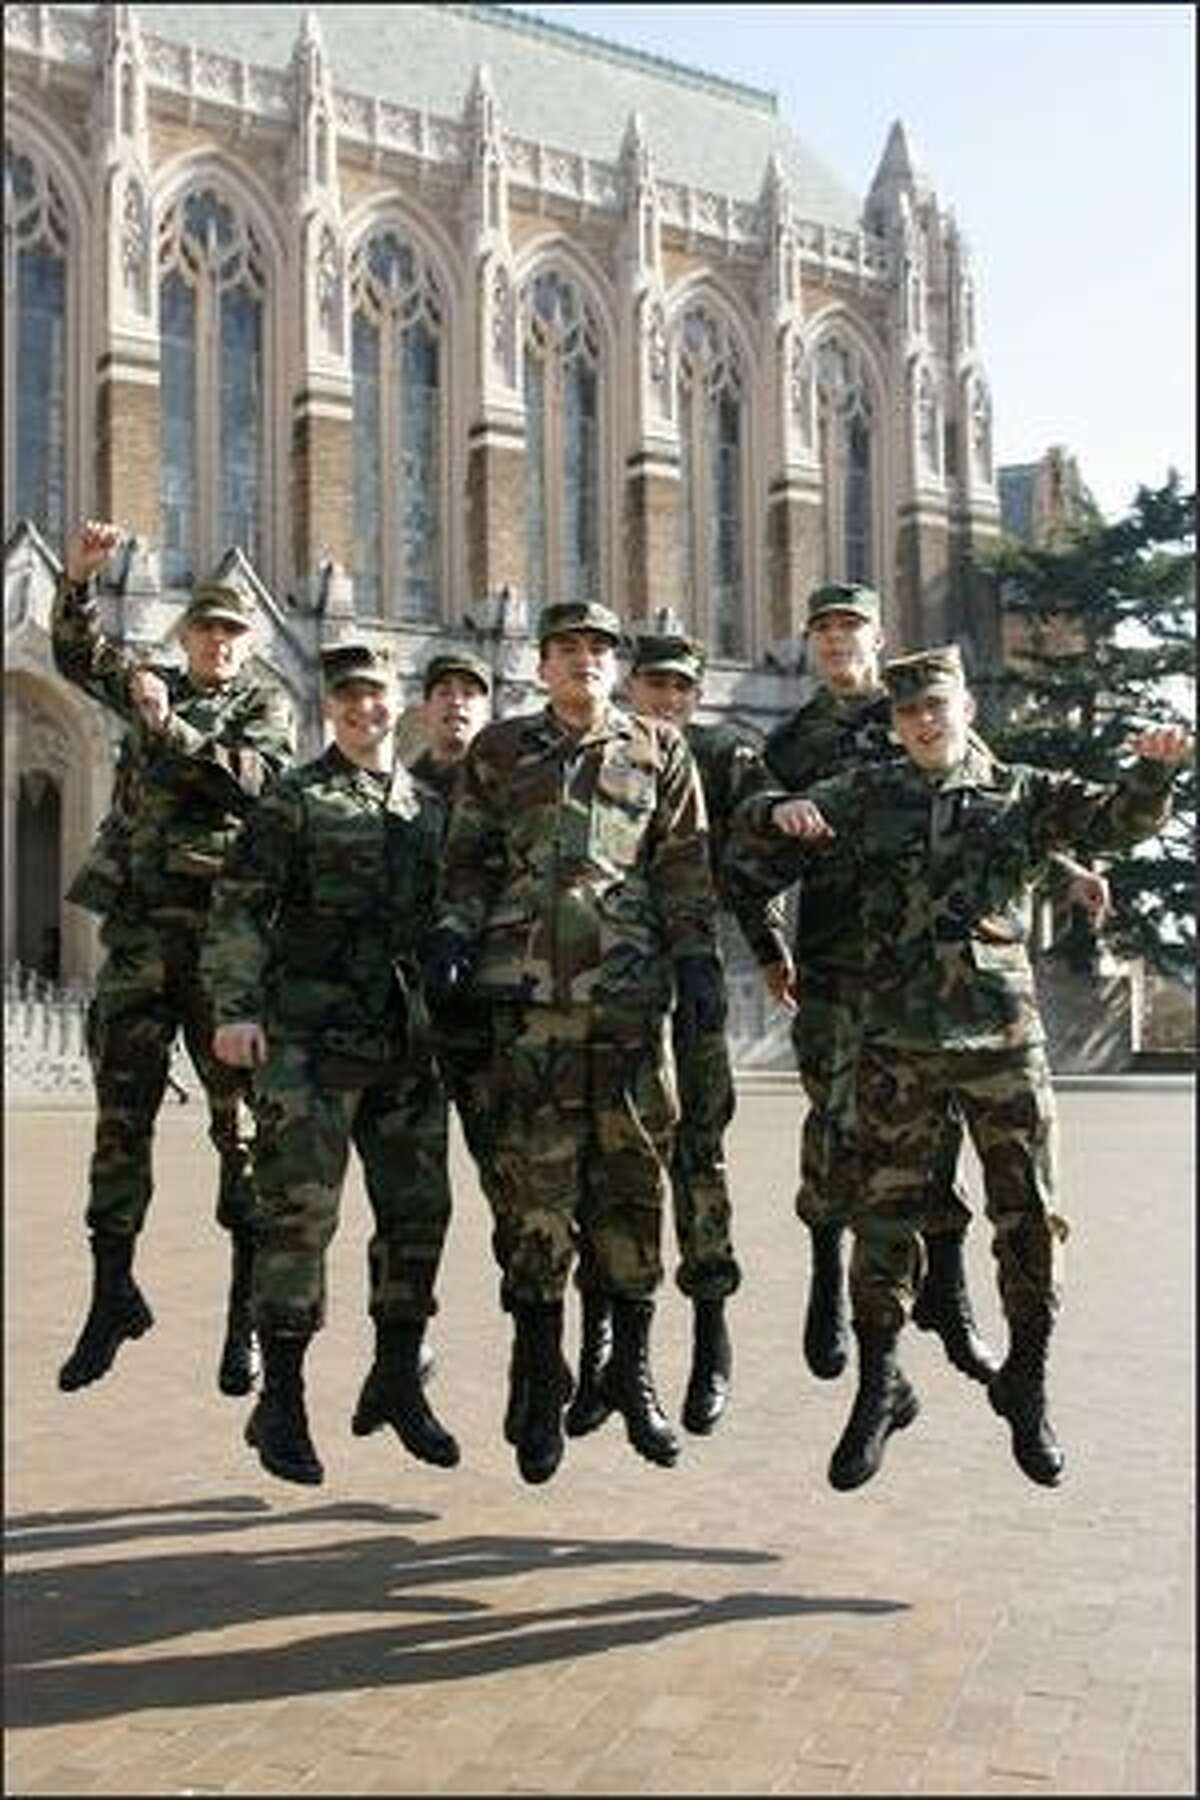 AIRBORNE -- Air Force ROTC cadets, from left, Vince Aqudelo, John Geis, Kelly Sullivan, Peter Murray, Christopher Pope, Christopher Birge and Nathan Isaman leap in honor of leap day at the University of Washington's Red Square.